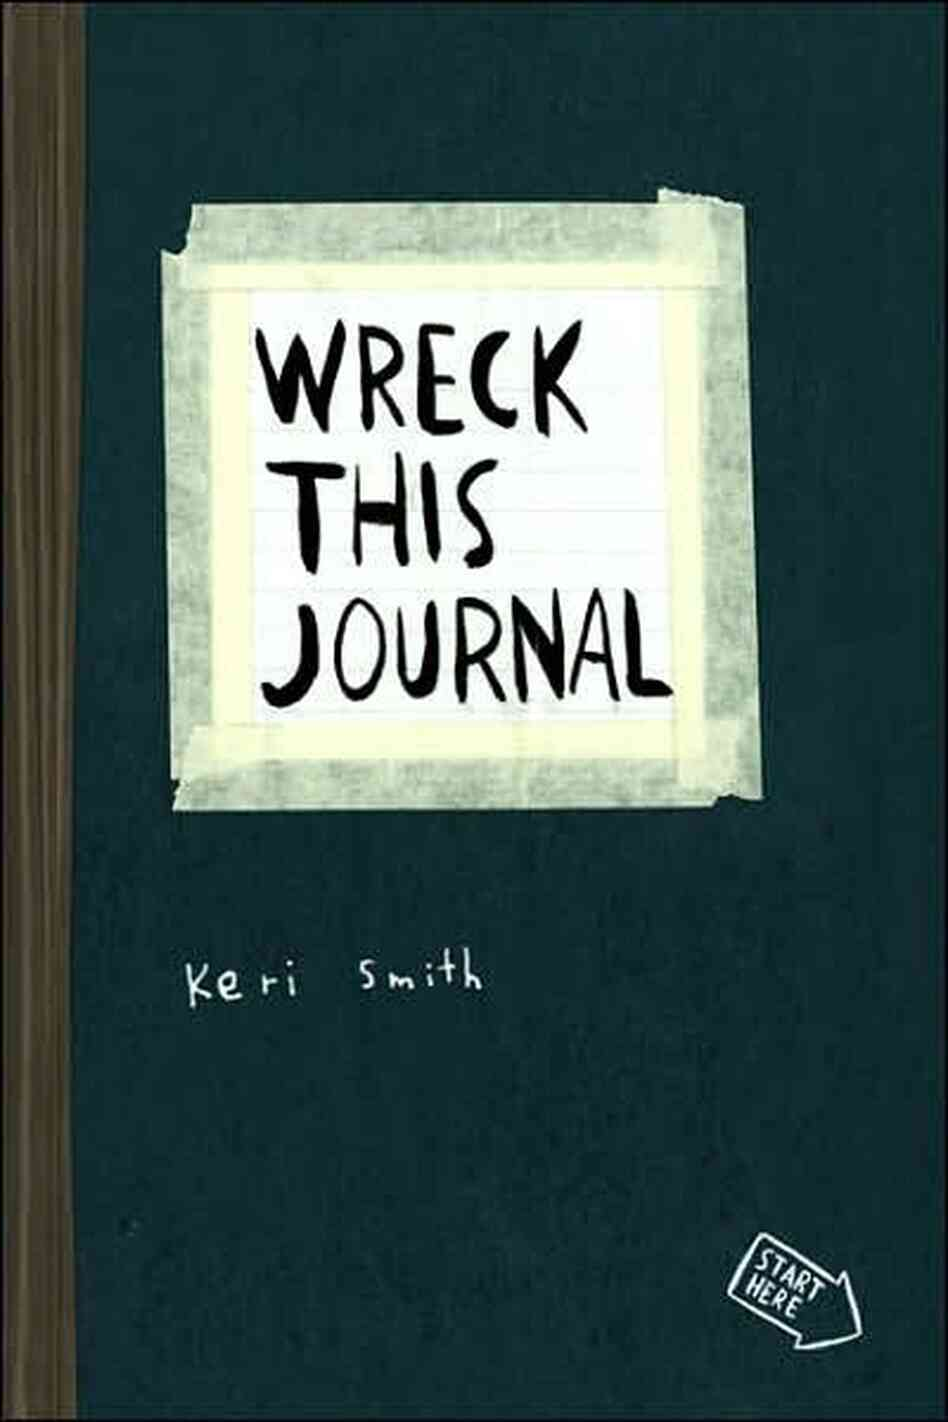 Wreck This Journal Book Cover Ideas : Wreck this journal npr